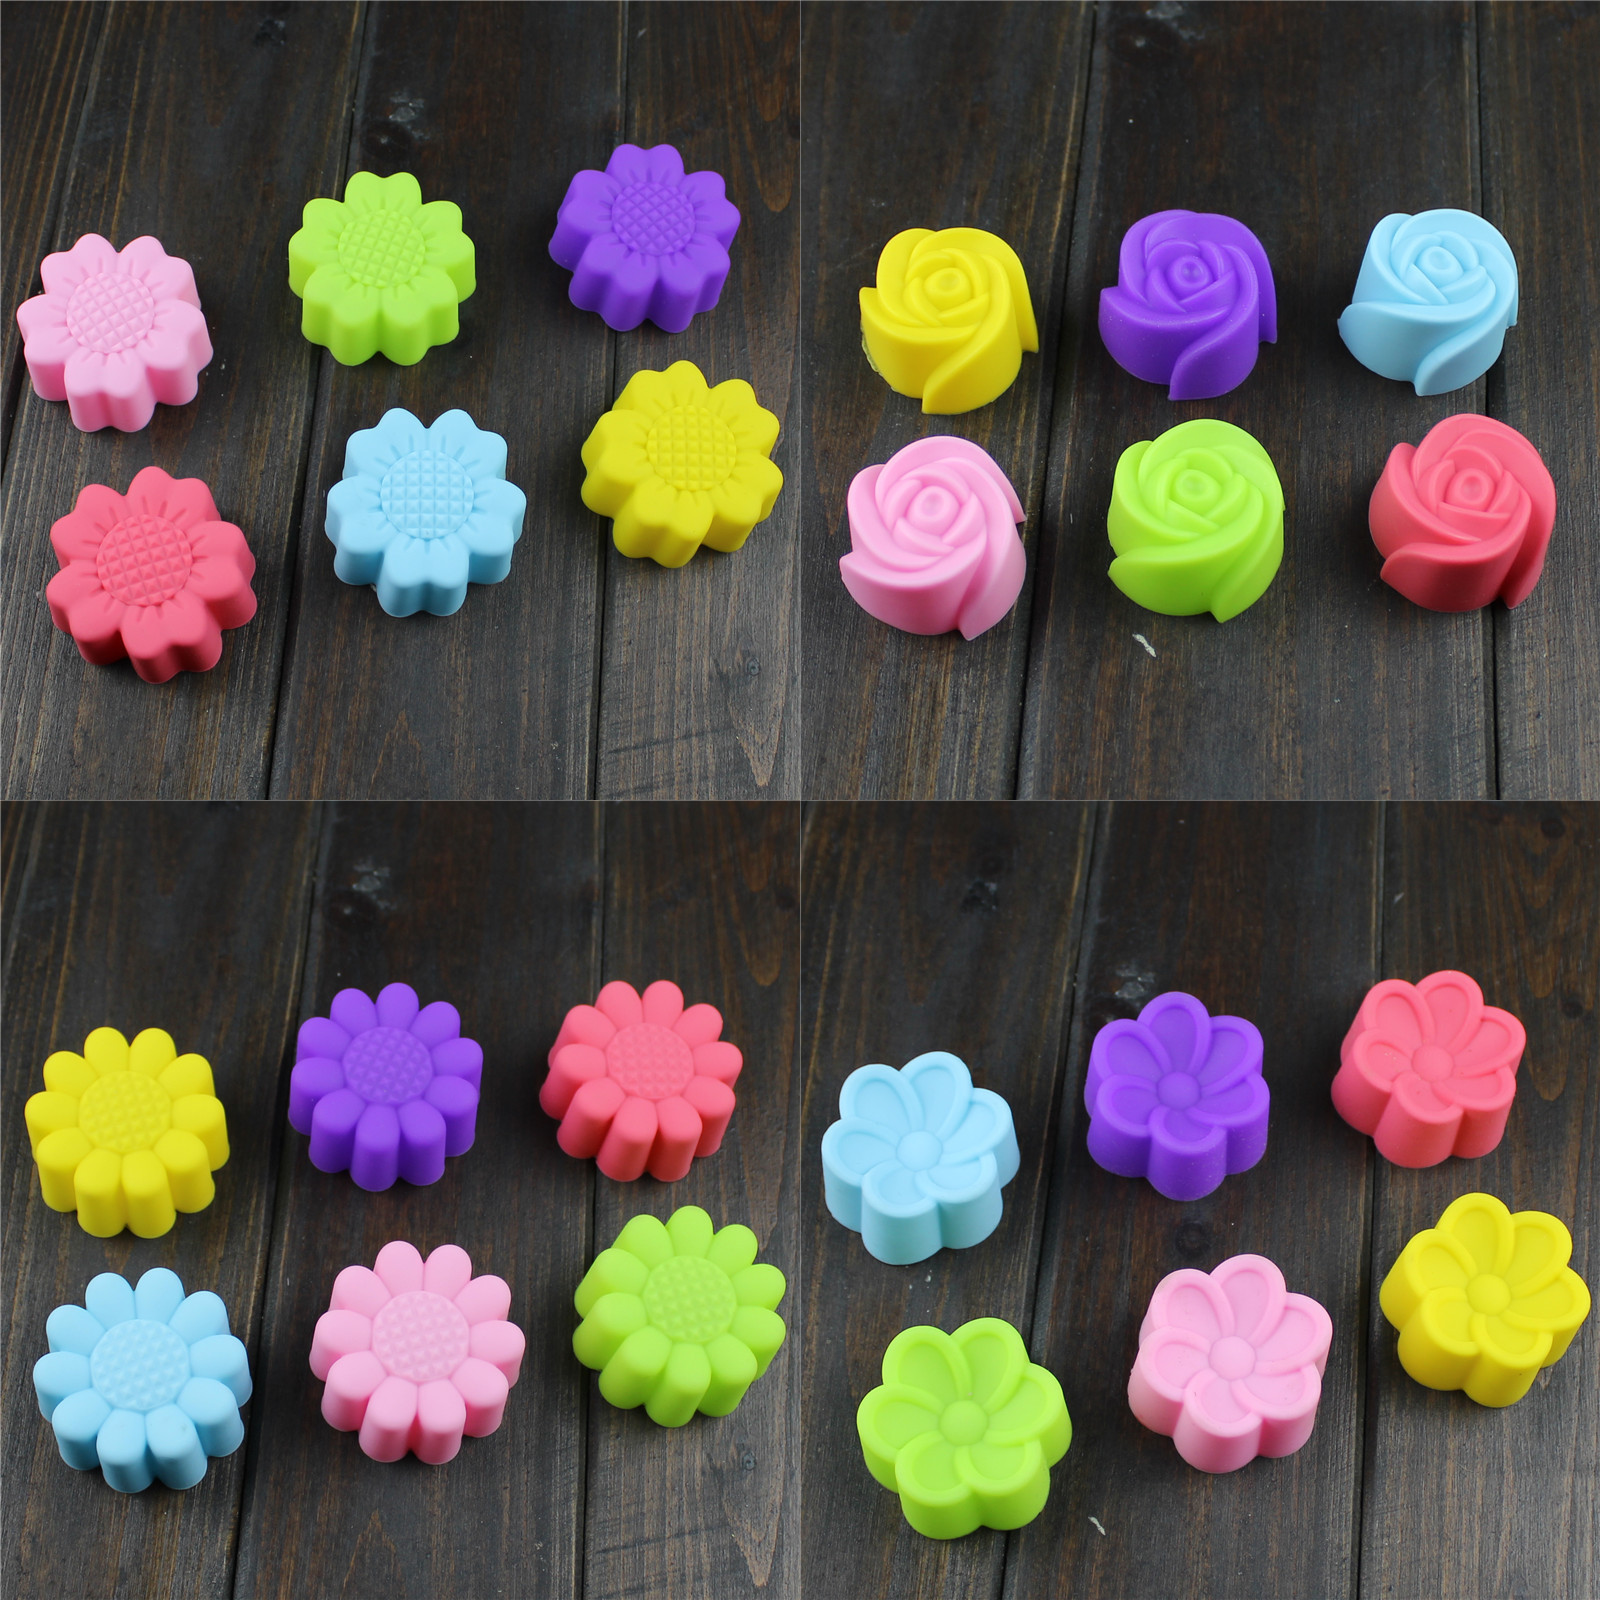 And fruit flower silicone mold plum begonia begonia flower rose flowers and fruit mold 6 a set of random colors